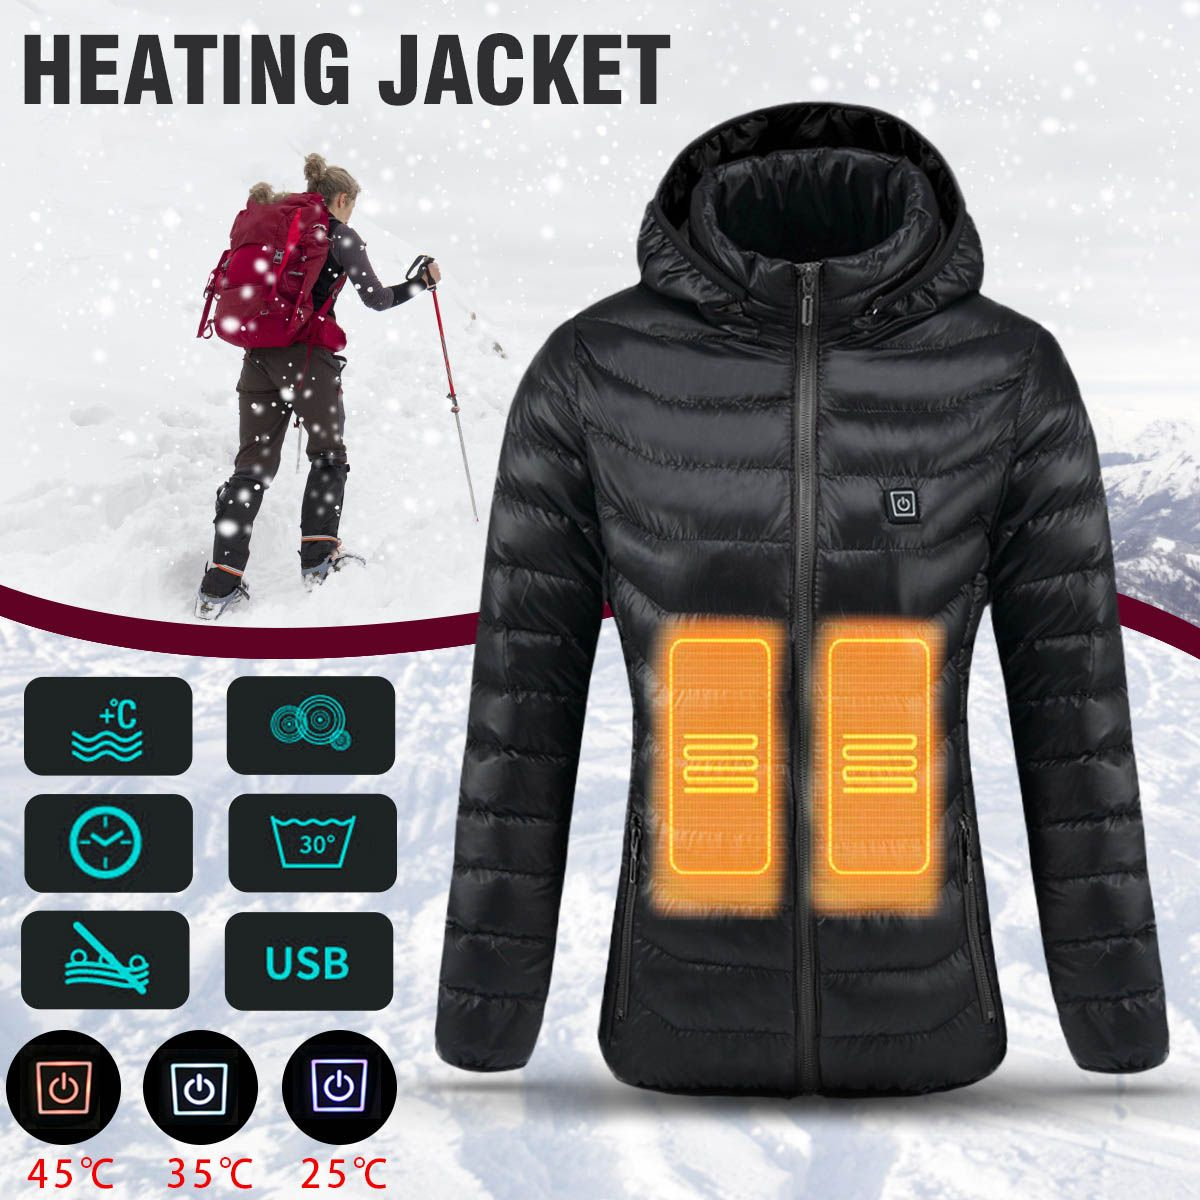 Women Heated Safety Jacket Winter Thermal Warm Hooded Heating Clothing USB Constant Temperature Waterproof Coat